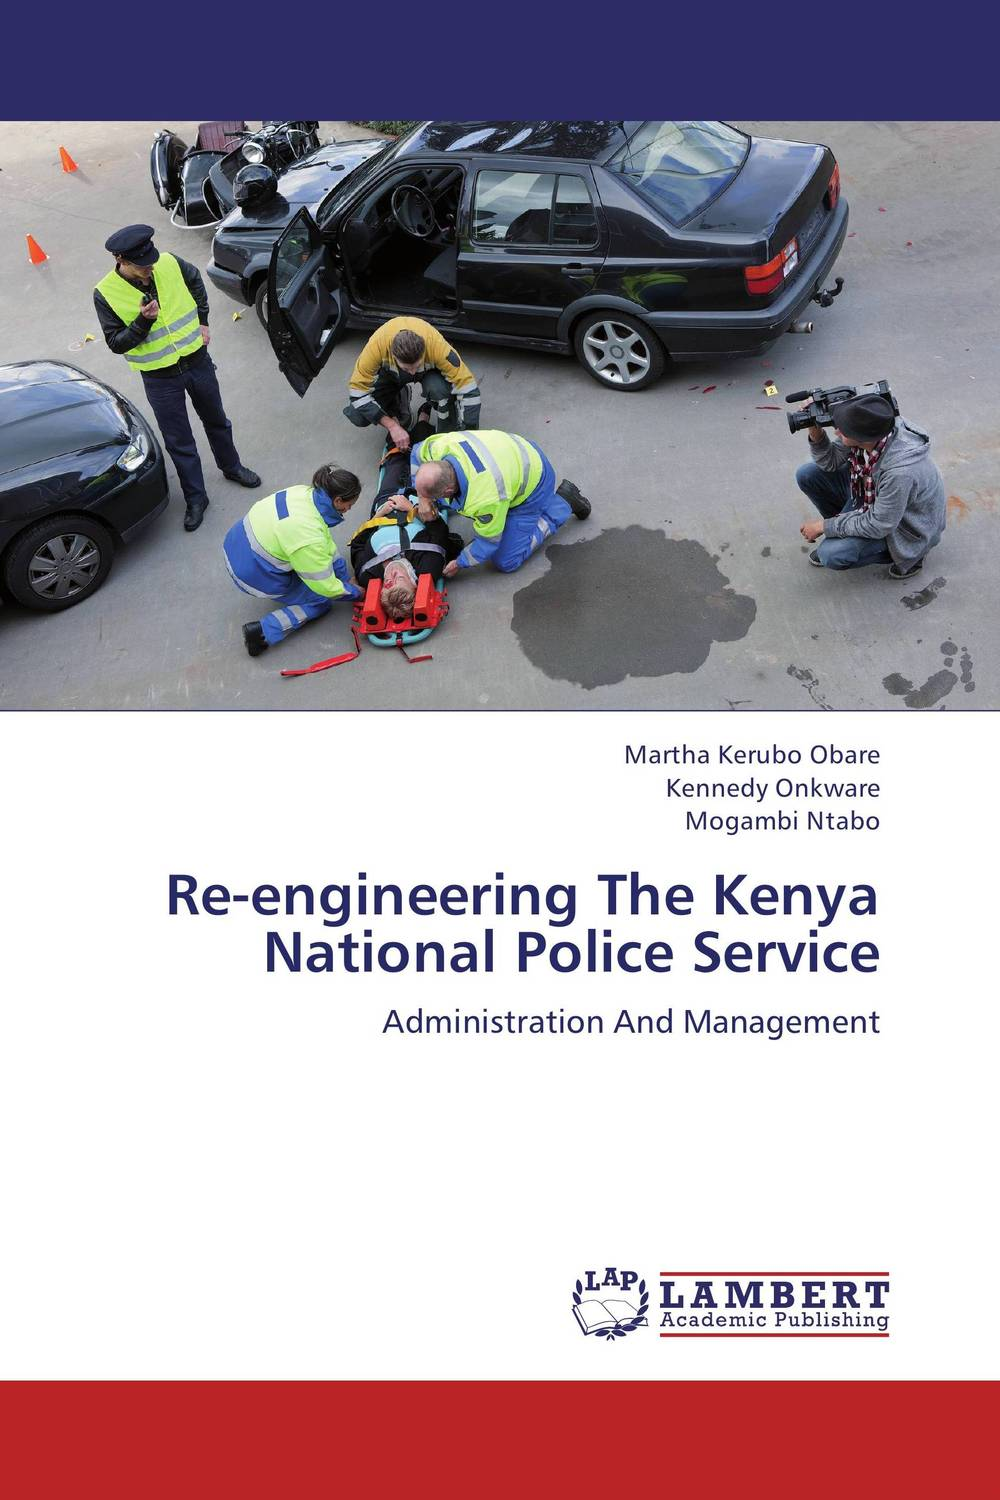 Re-engineering The Kenya National Police Service